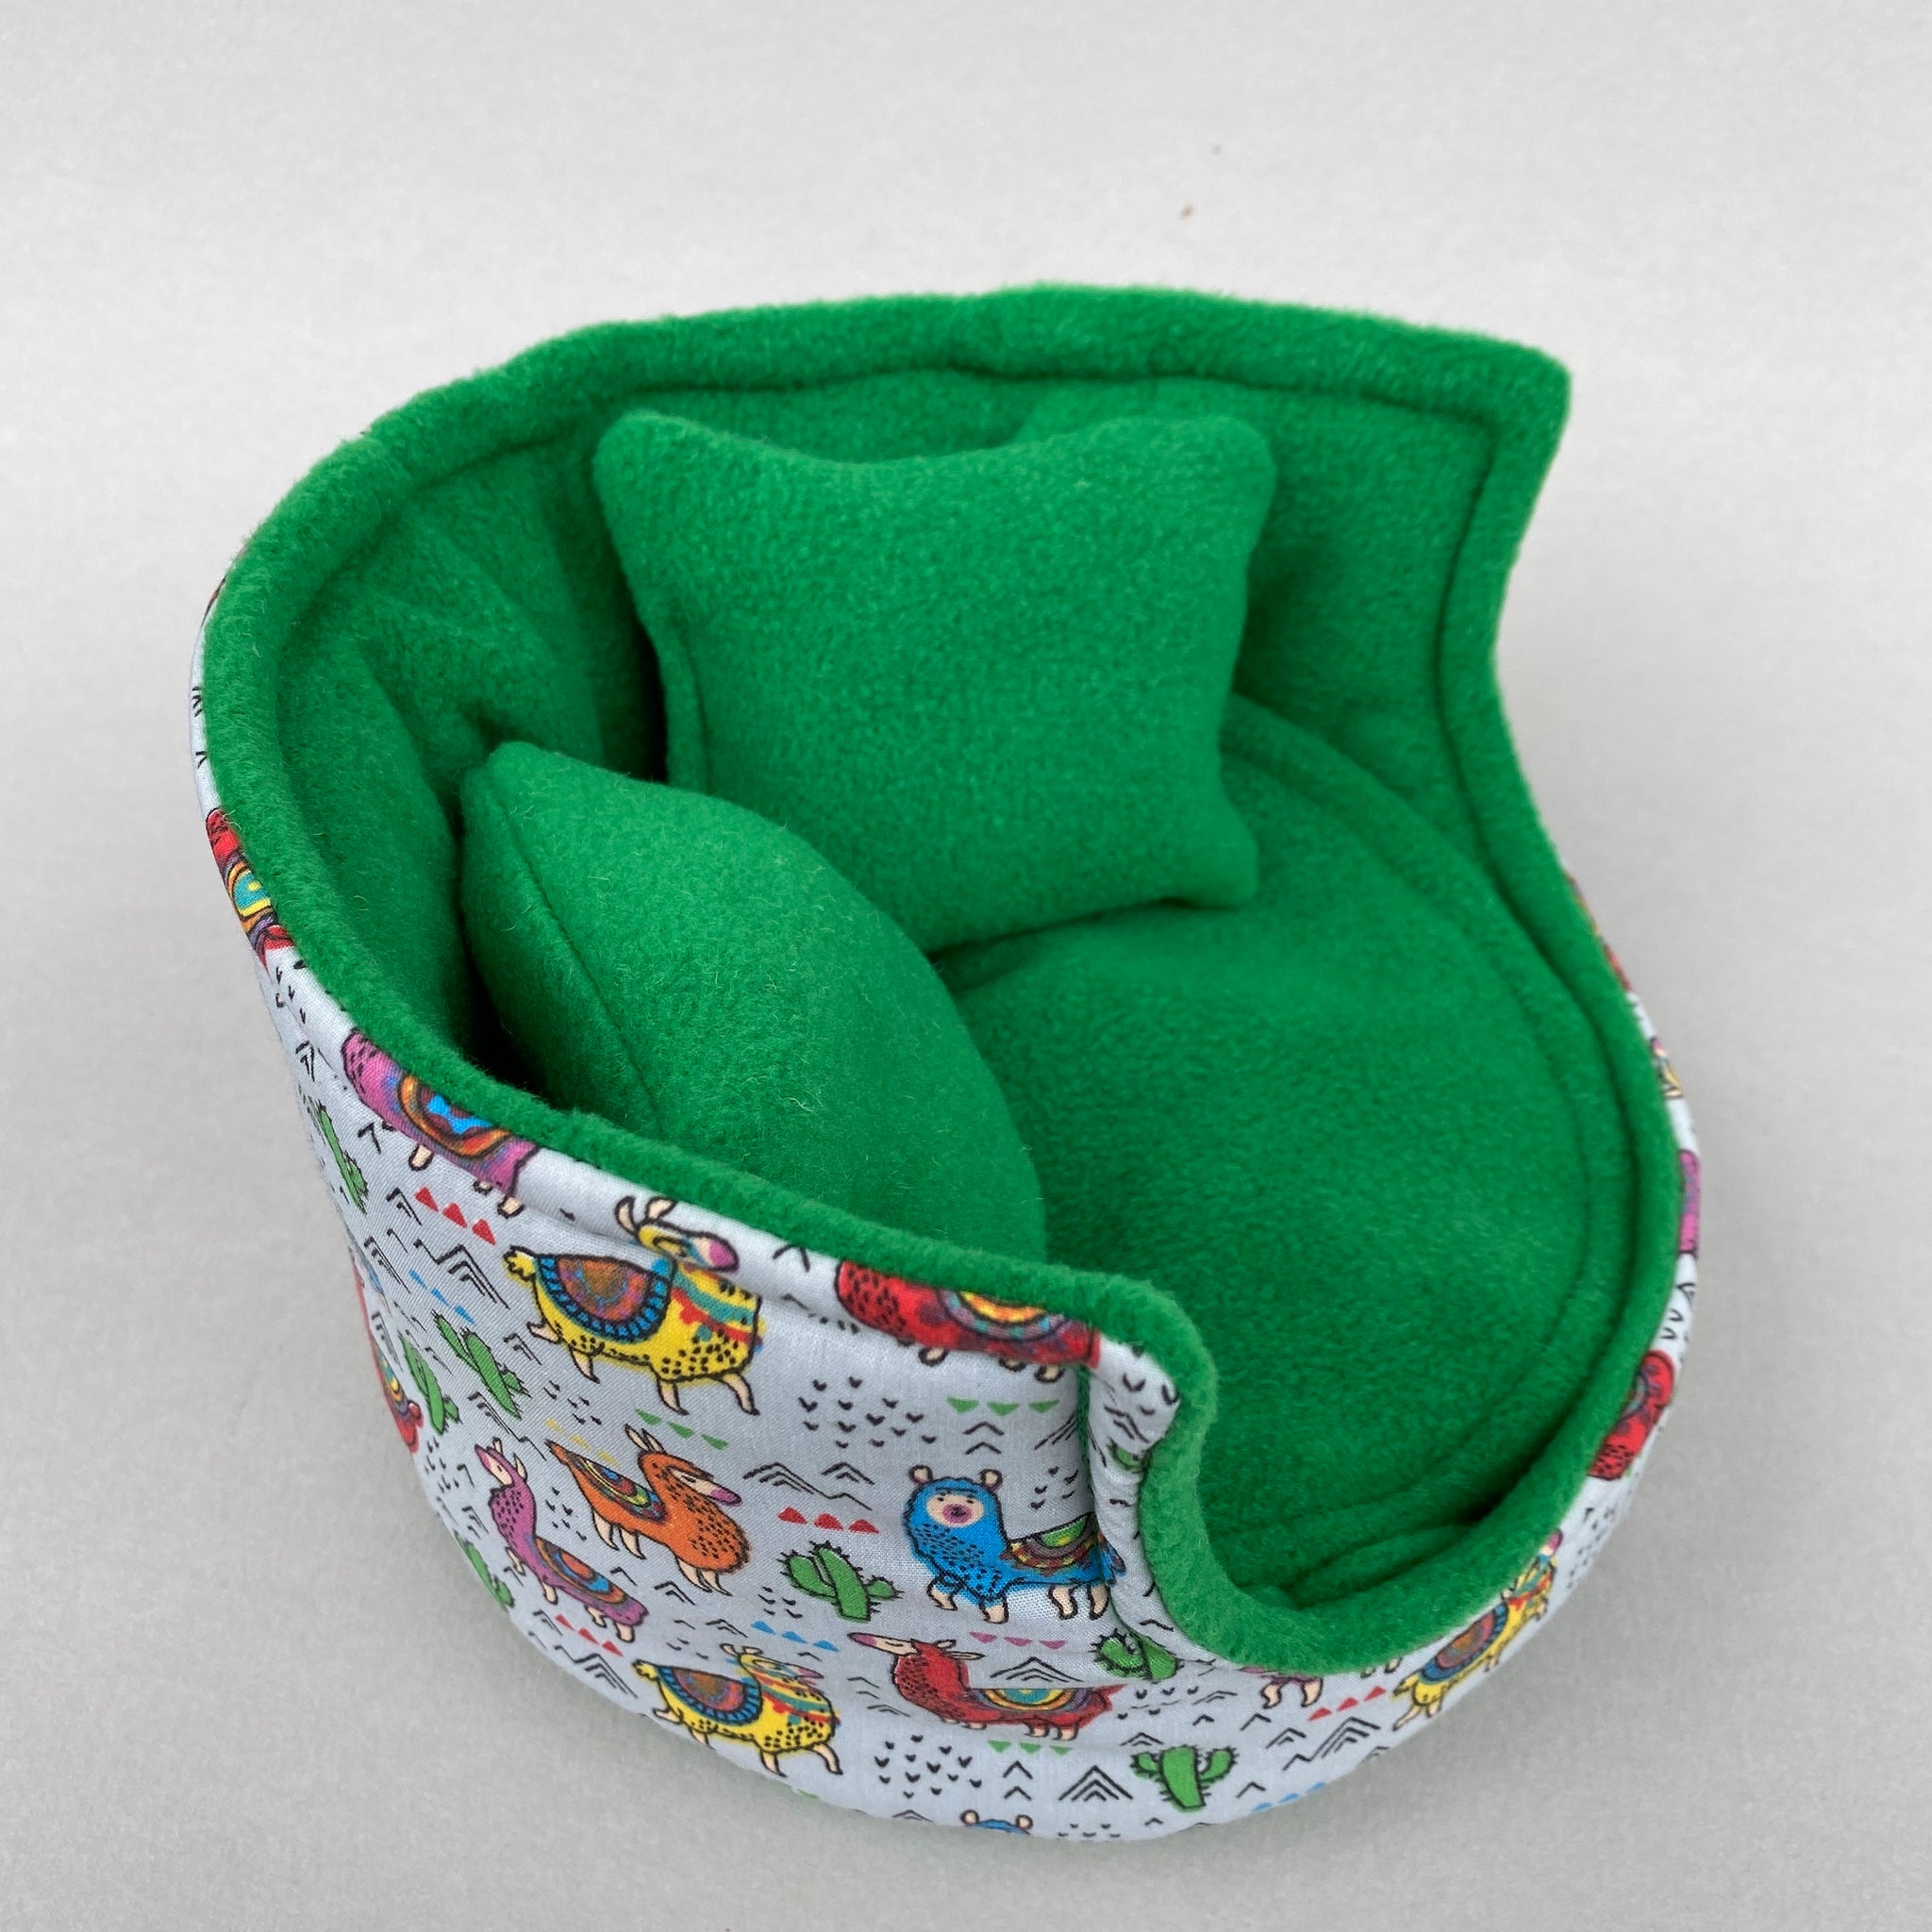 Drama Llama Cuddle Cup Pet Sofa Hedgehog And Small Guinea Pig Bed S The Hoghouse